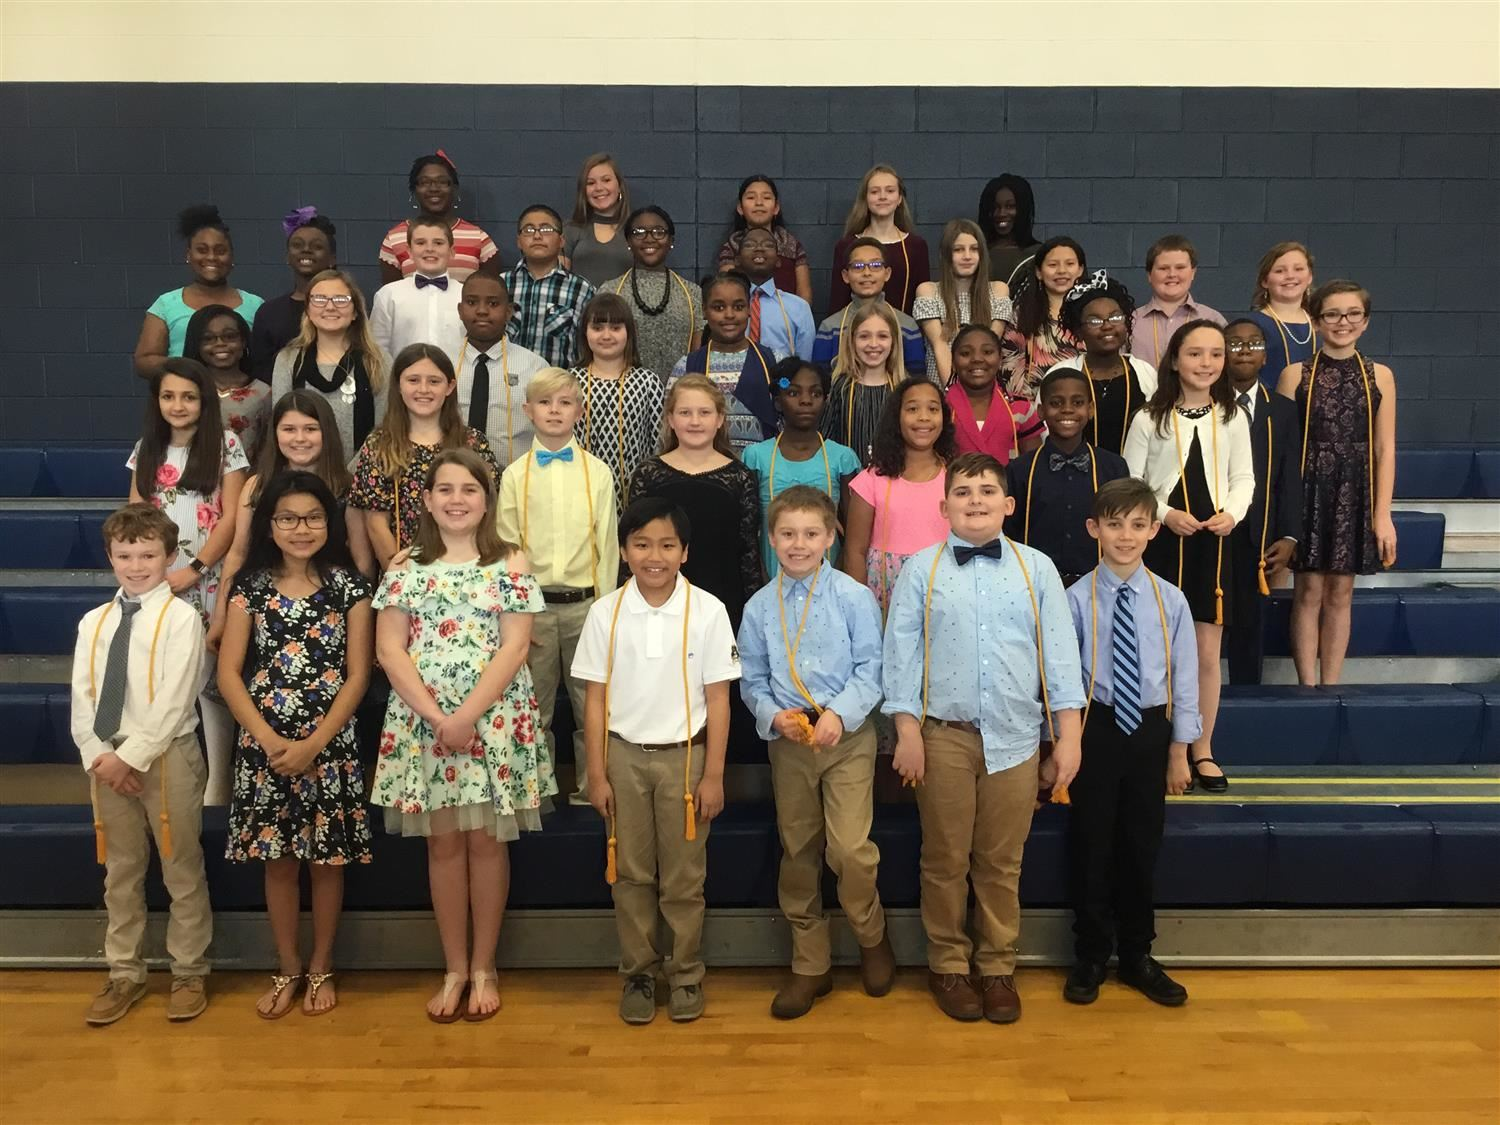 Members of the National Elementary Honor Society